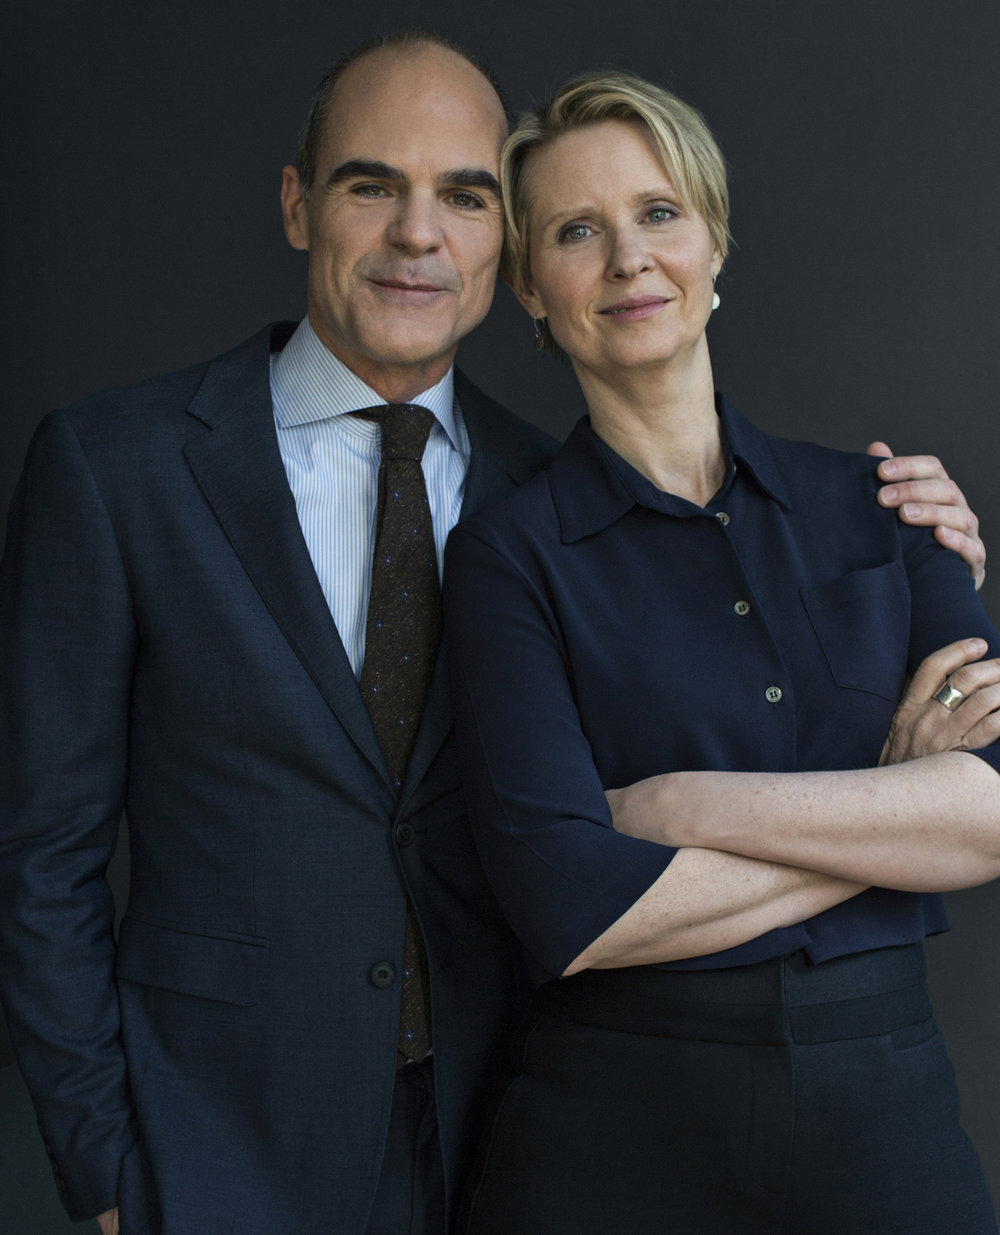 Cynthia Nixon & Michael Kelly / Its harassment campaign